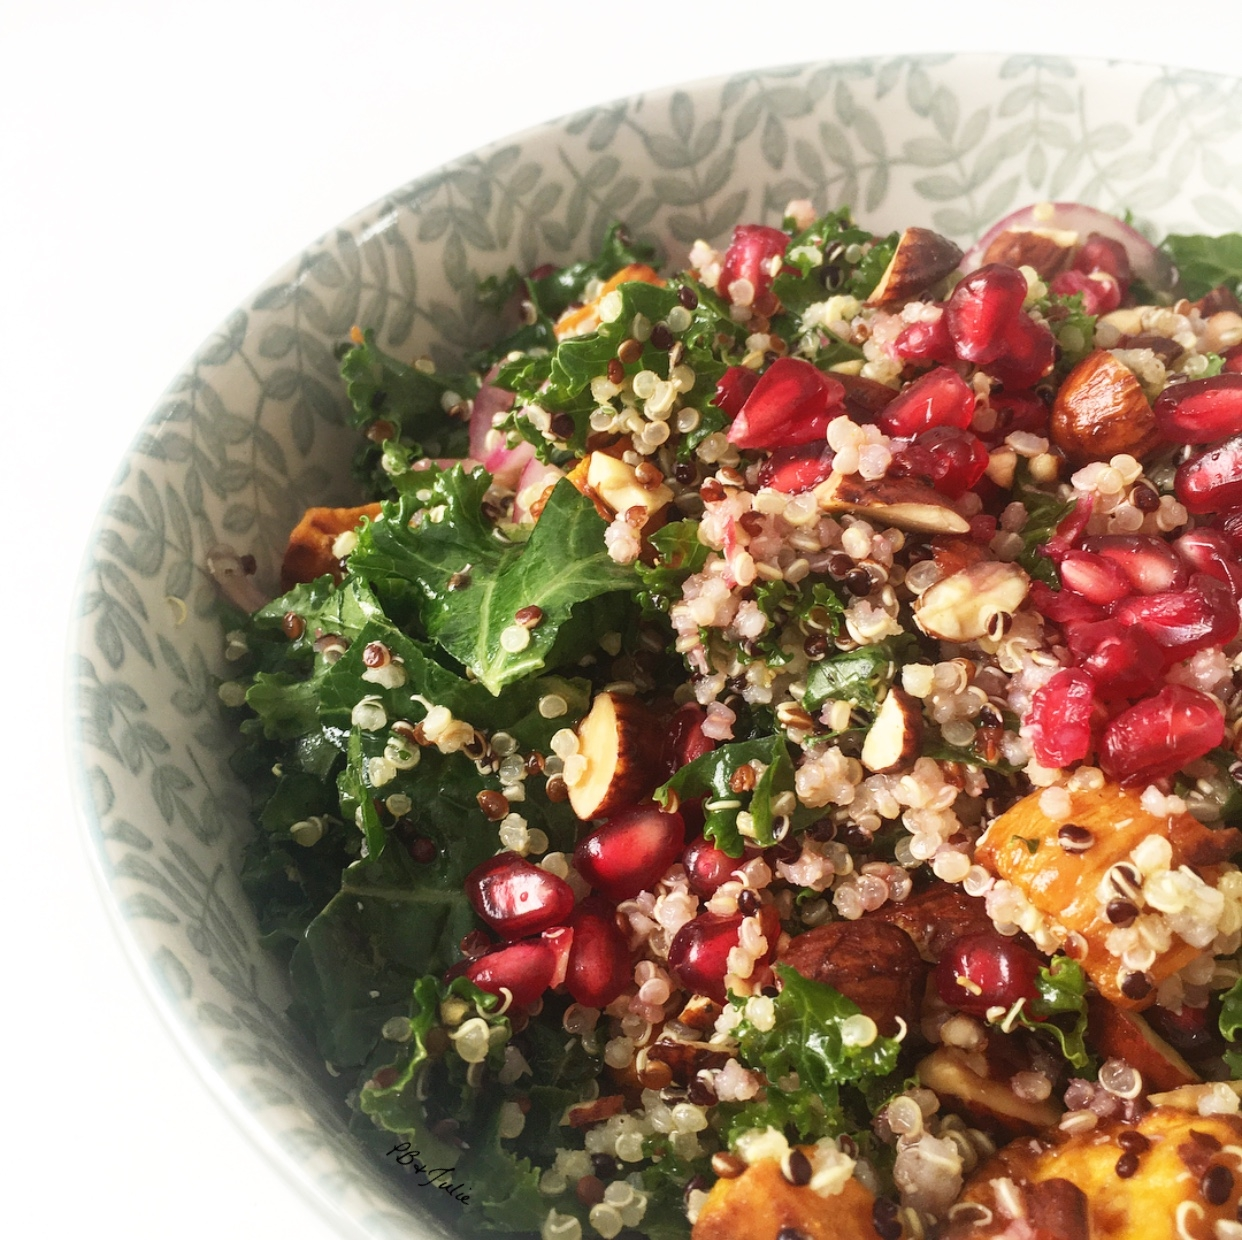 Sweet potato, kale & quinoa summer salad. Get transported to the iconic Shelly Beach in Manly, Australia with each tantalizing fork full. Gluten free and vegan :)